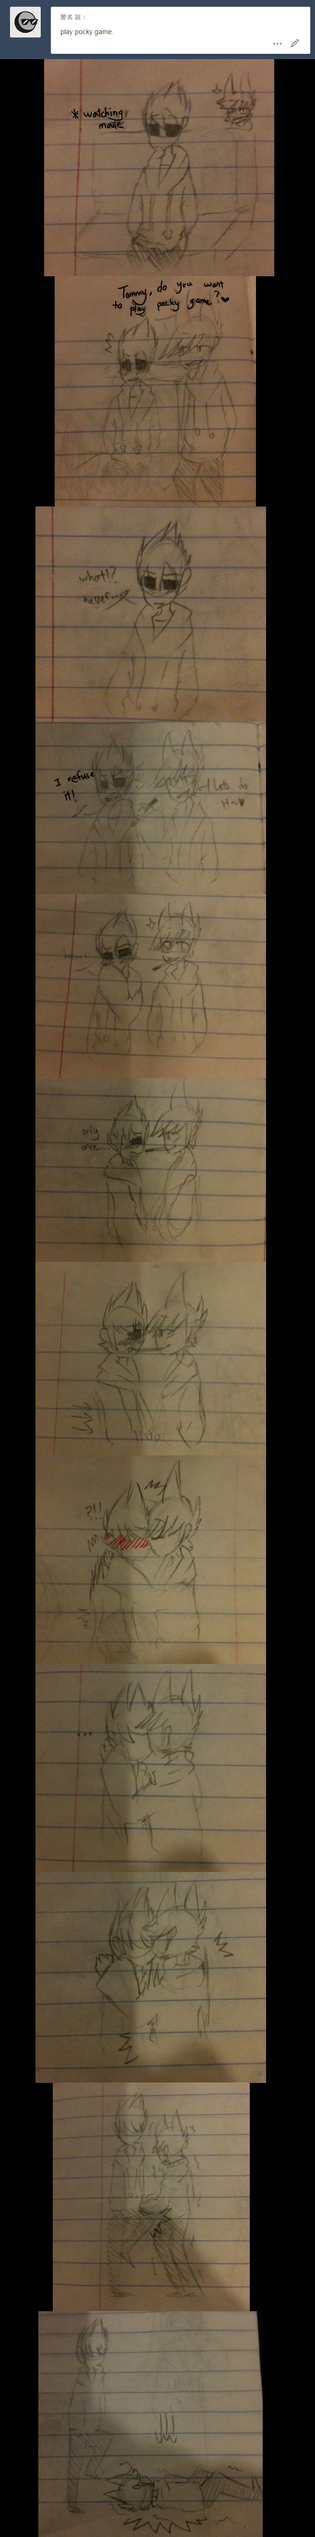 Eddsworld pocky game. by HuiRou